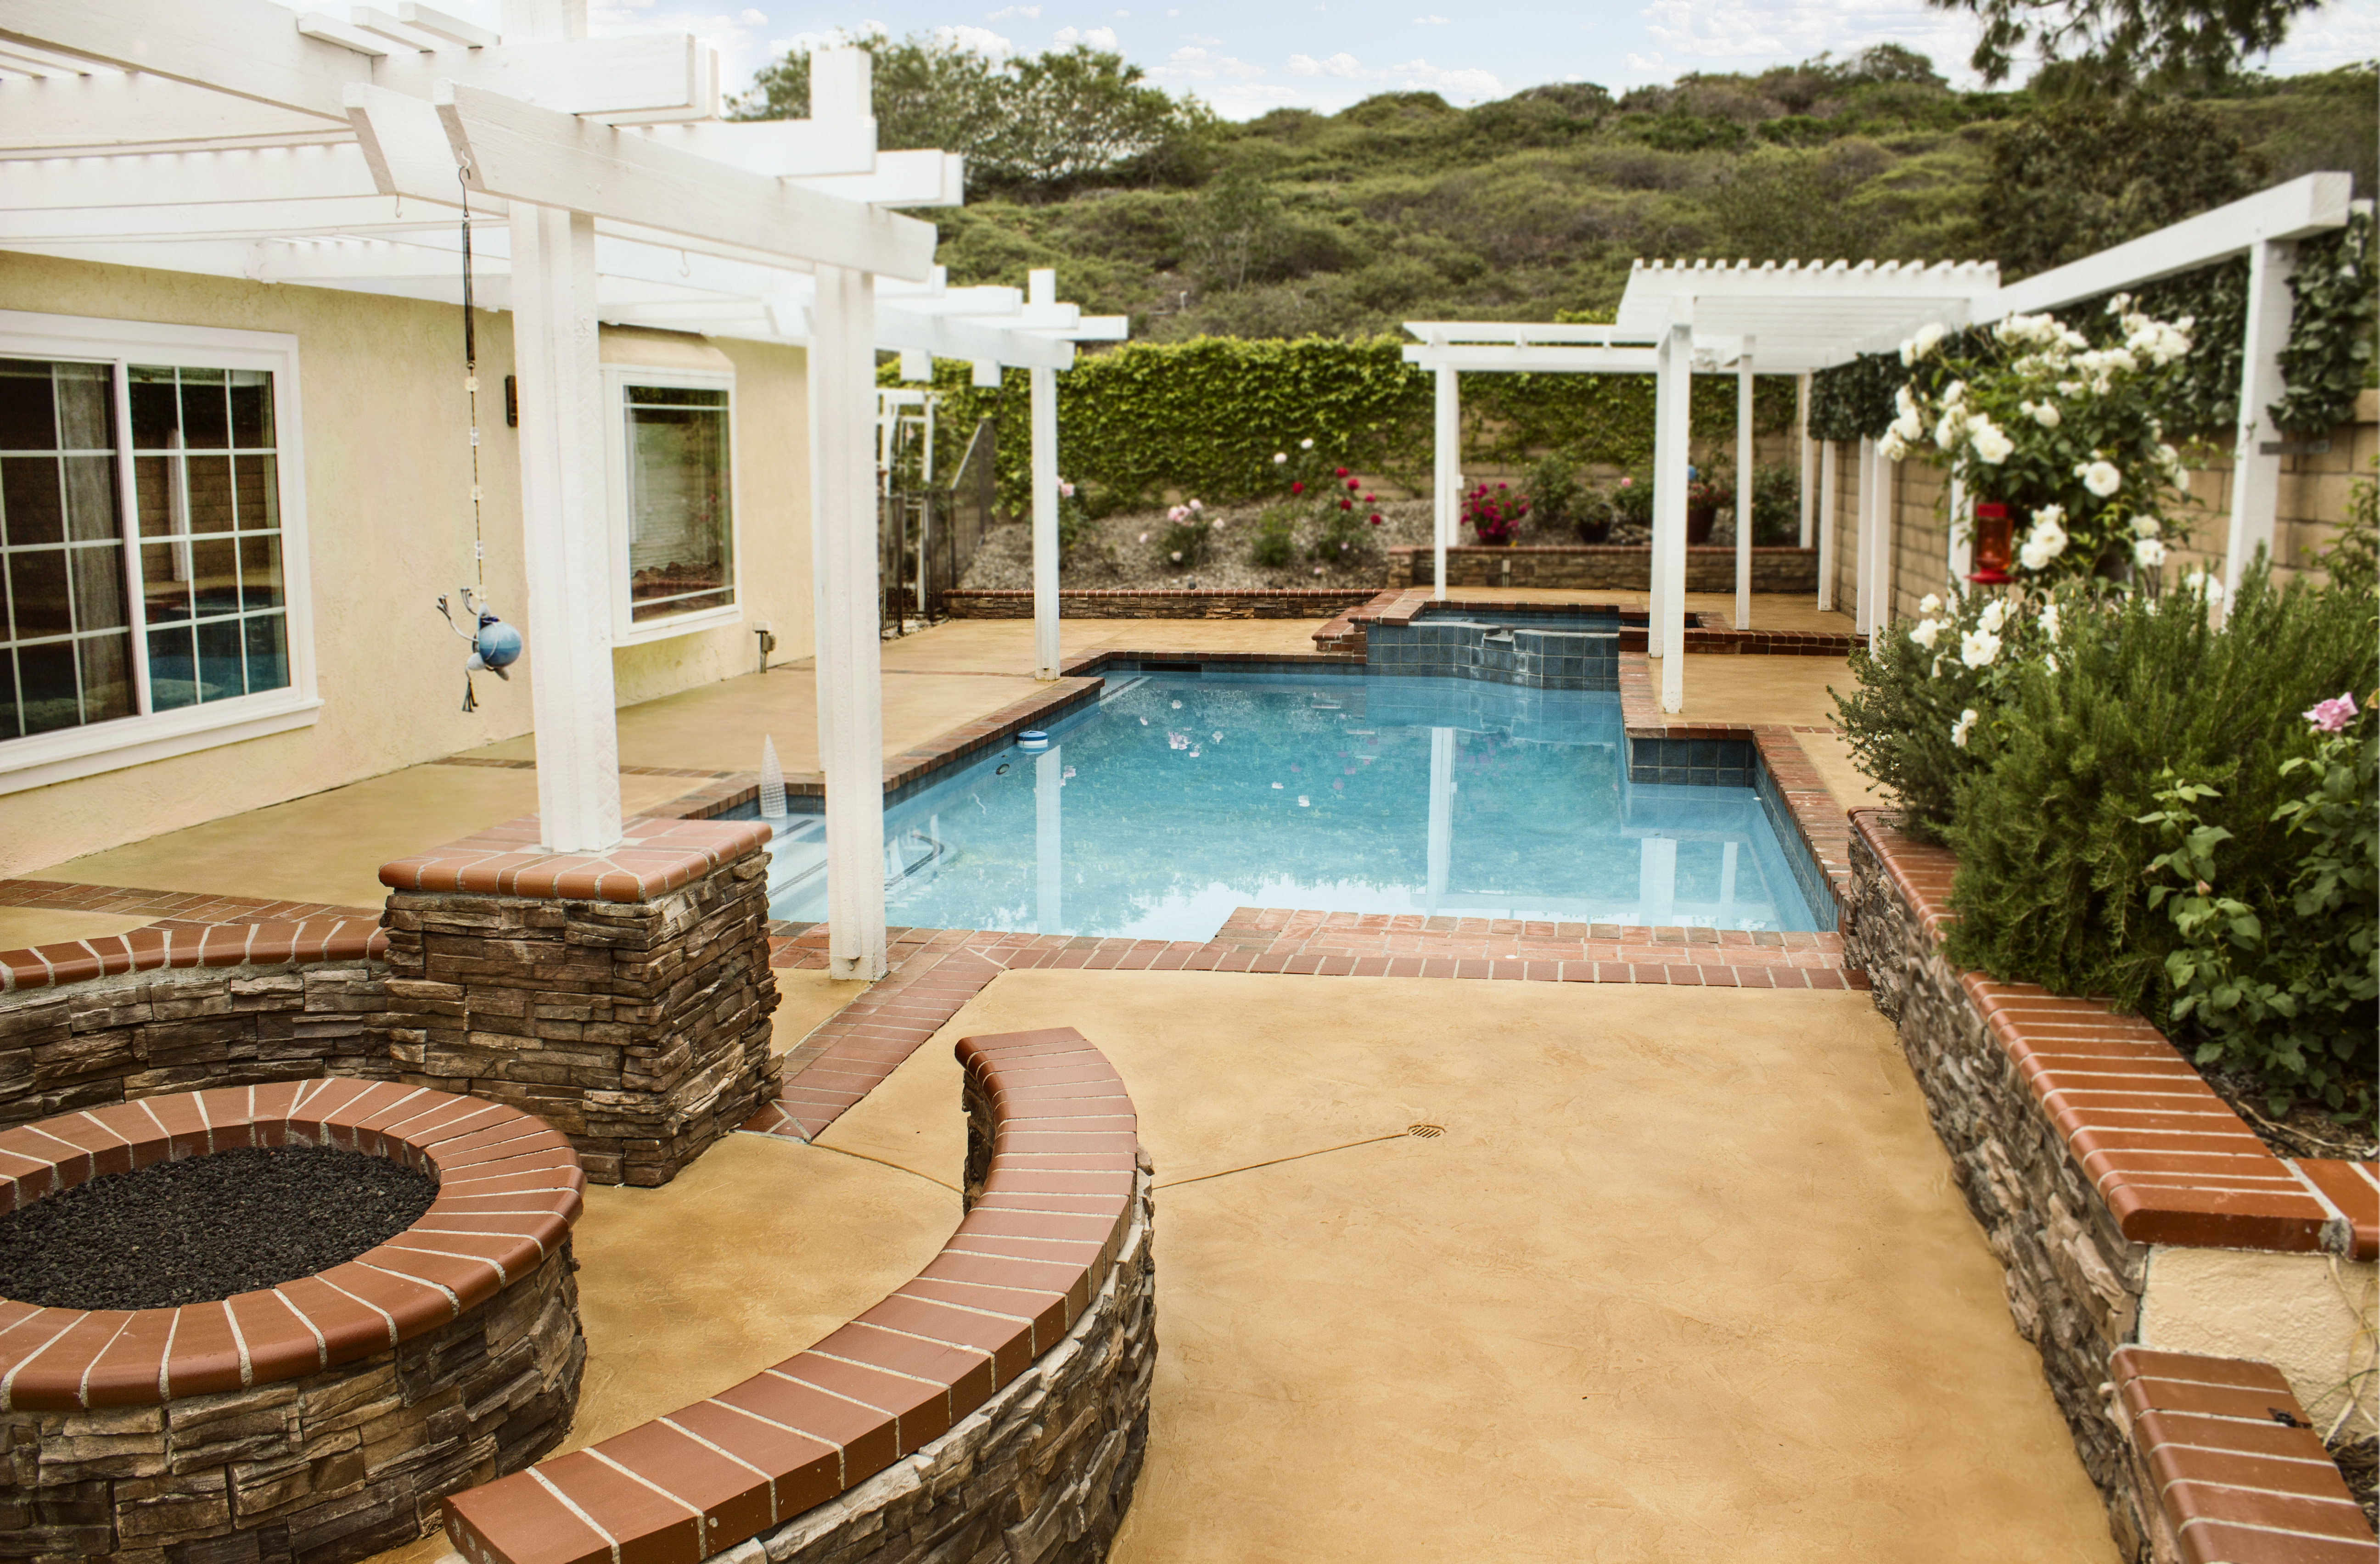 Pool Deck Concrete Overlay and Stain